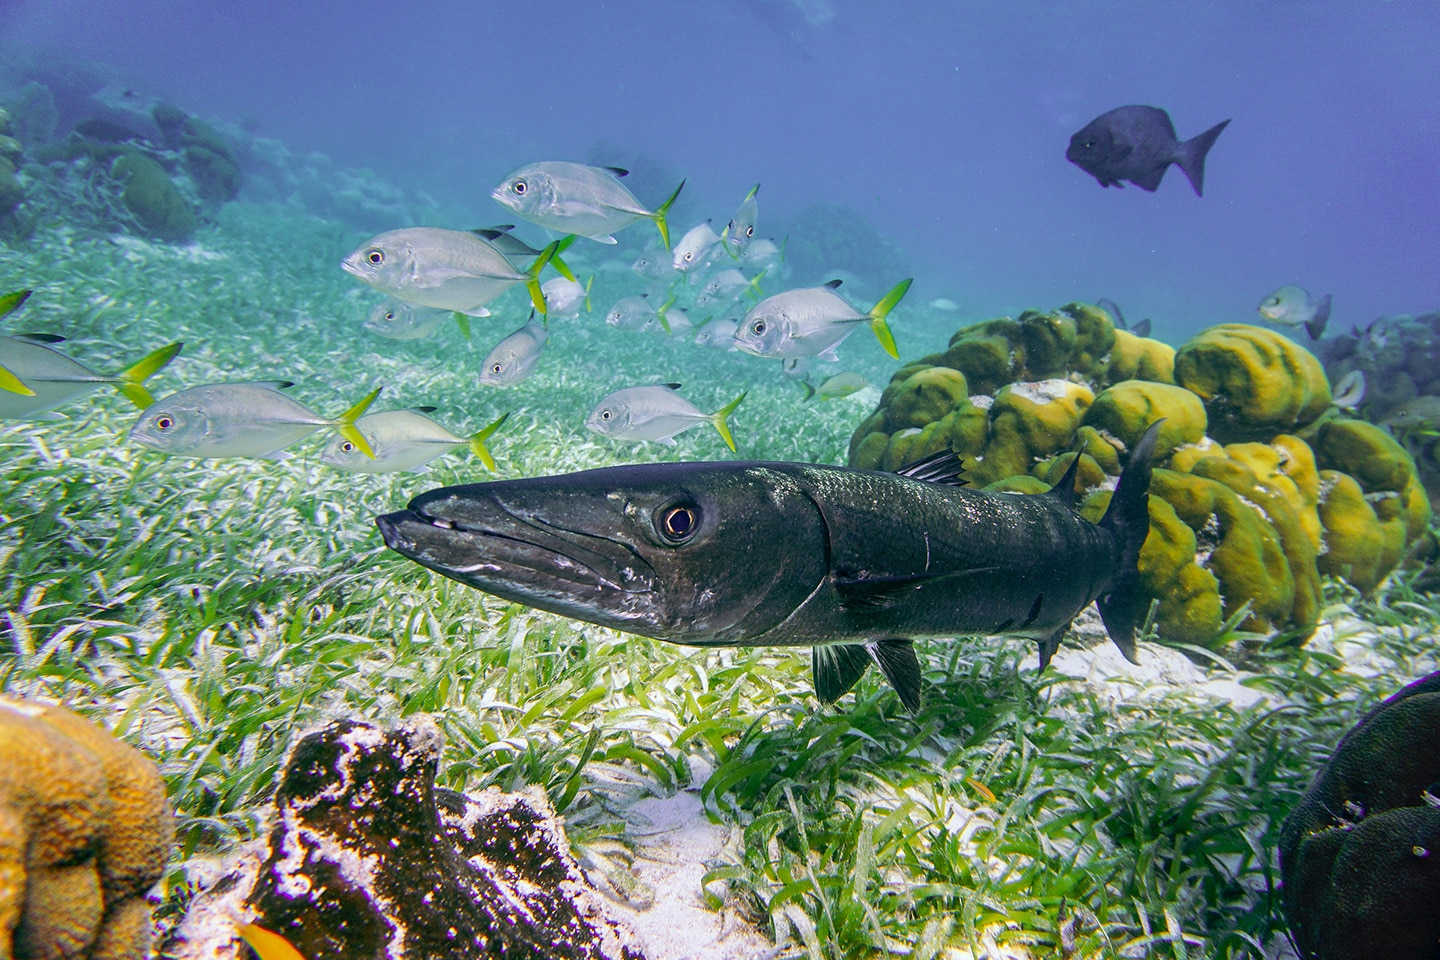 Barracuda and reef fish at the reef in Belize